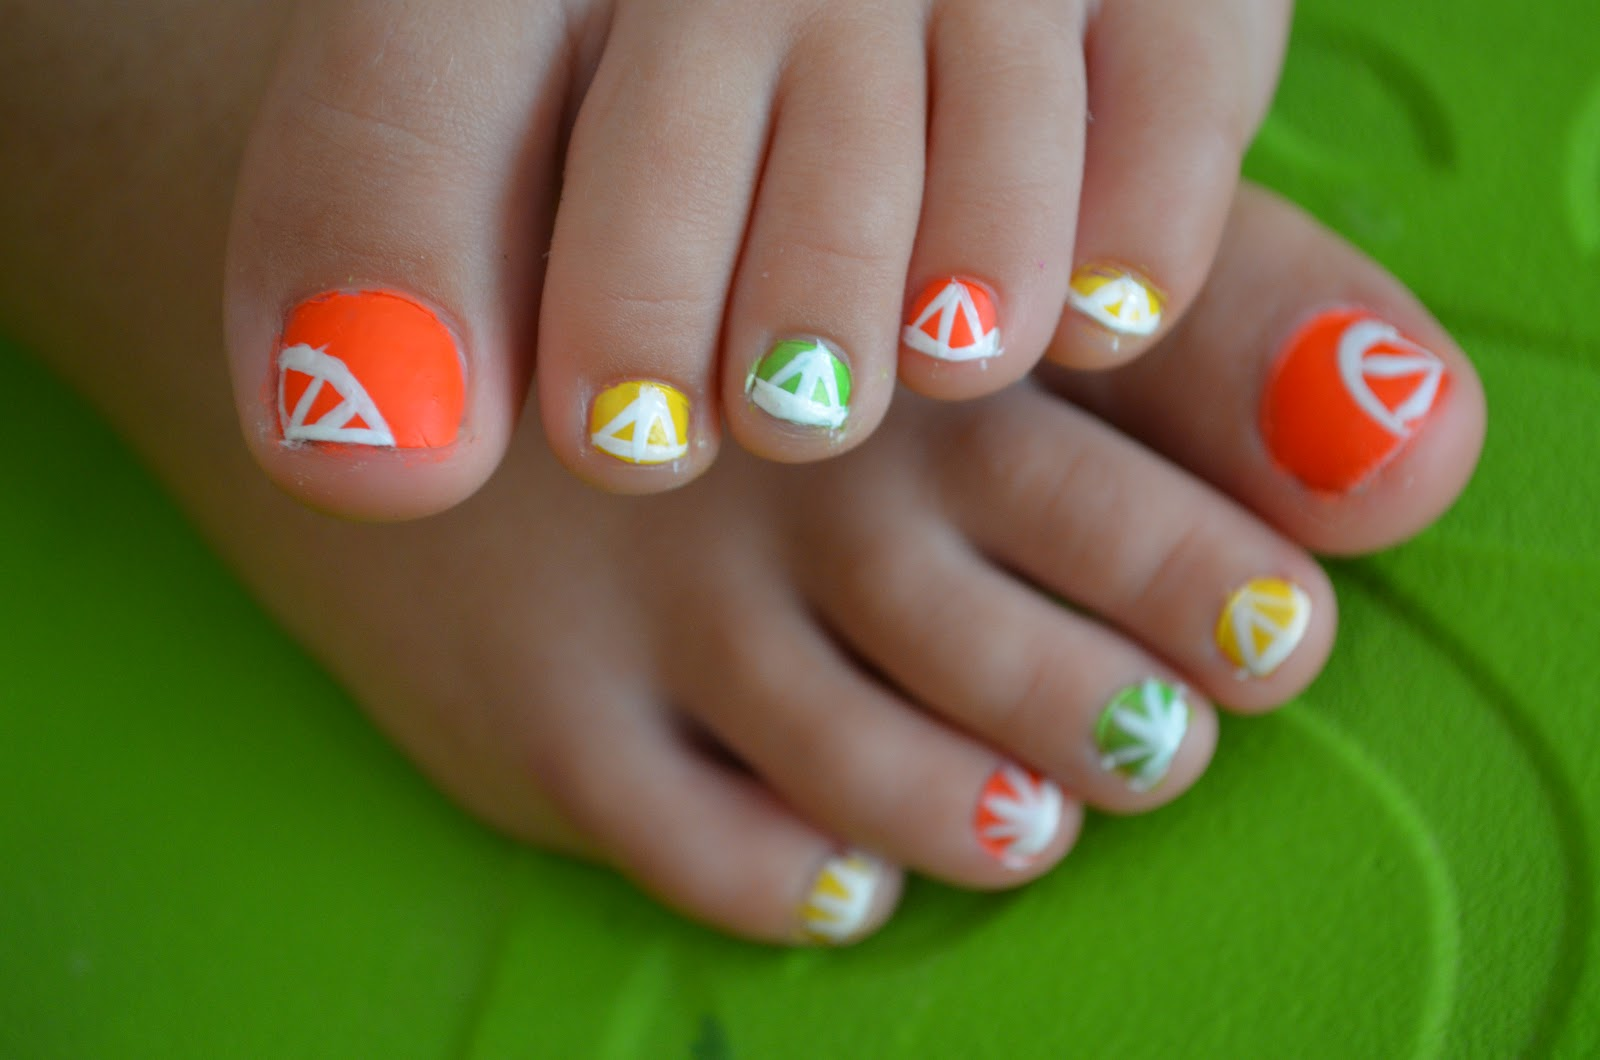 Eautiful nails for your little girl wednesday february 15 2017 prinsesfo Choice Image